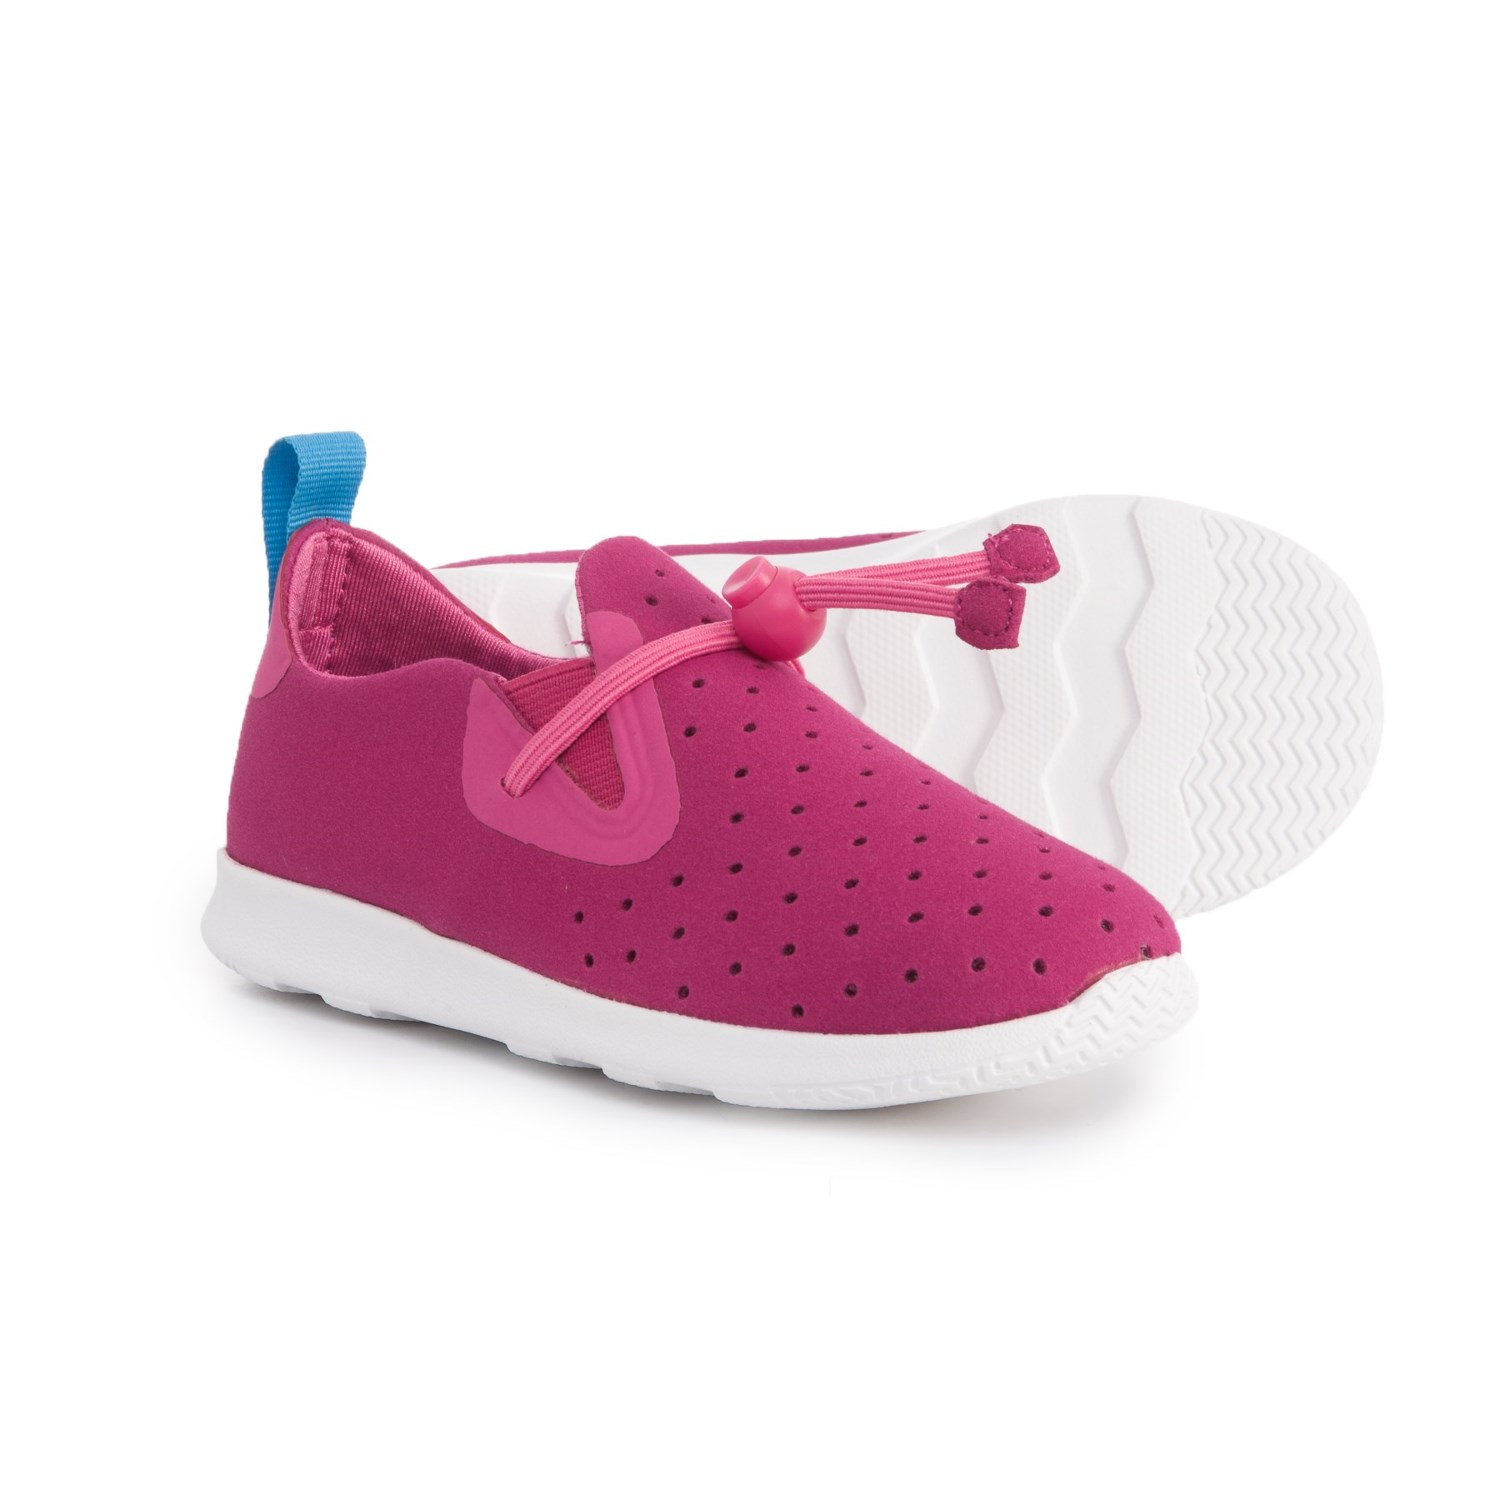 Native Shoes AP Sneakers For Girls Save